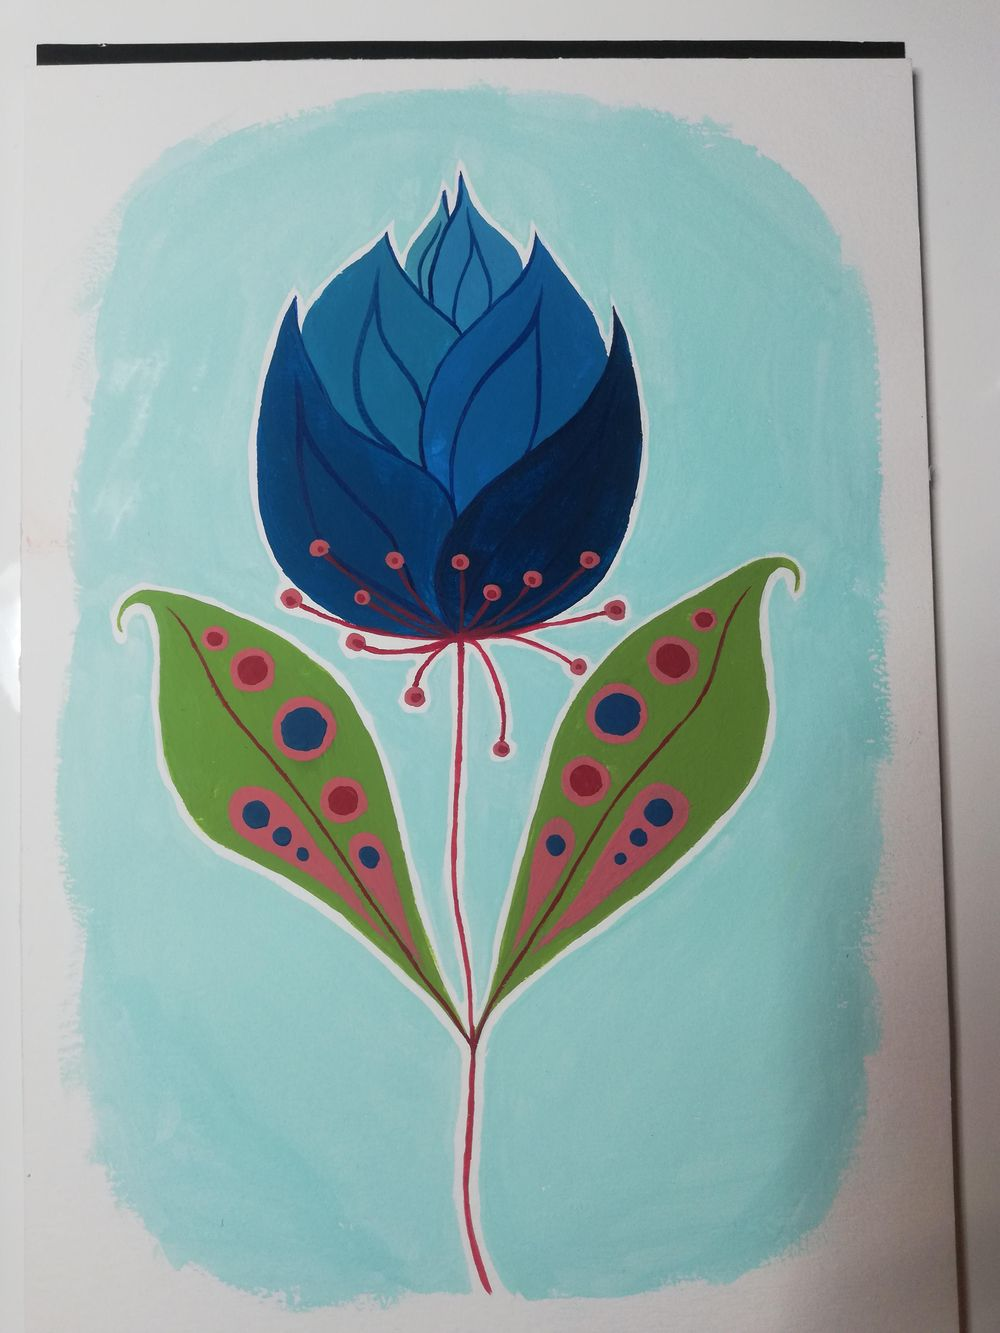 Blue Flower - image 1 - student project